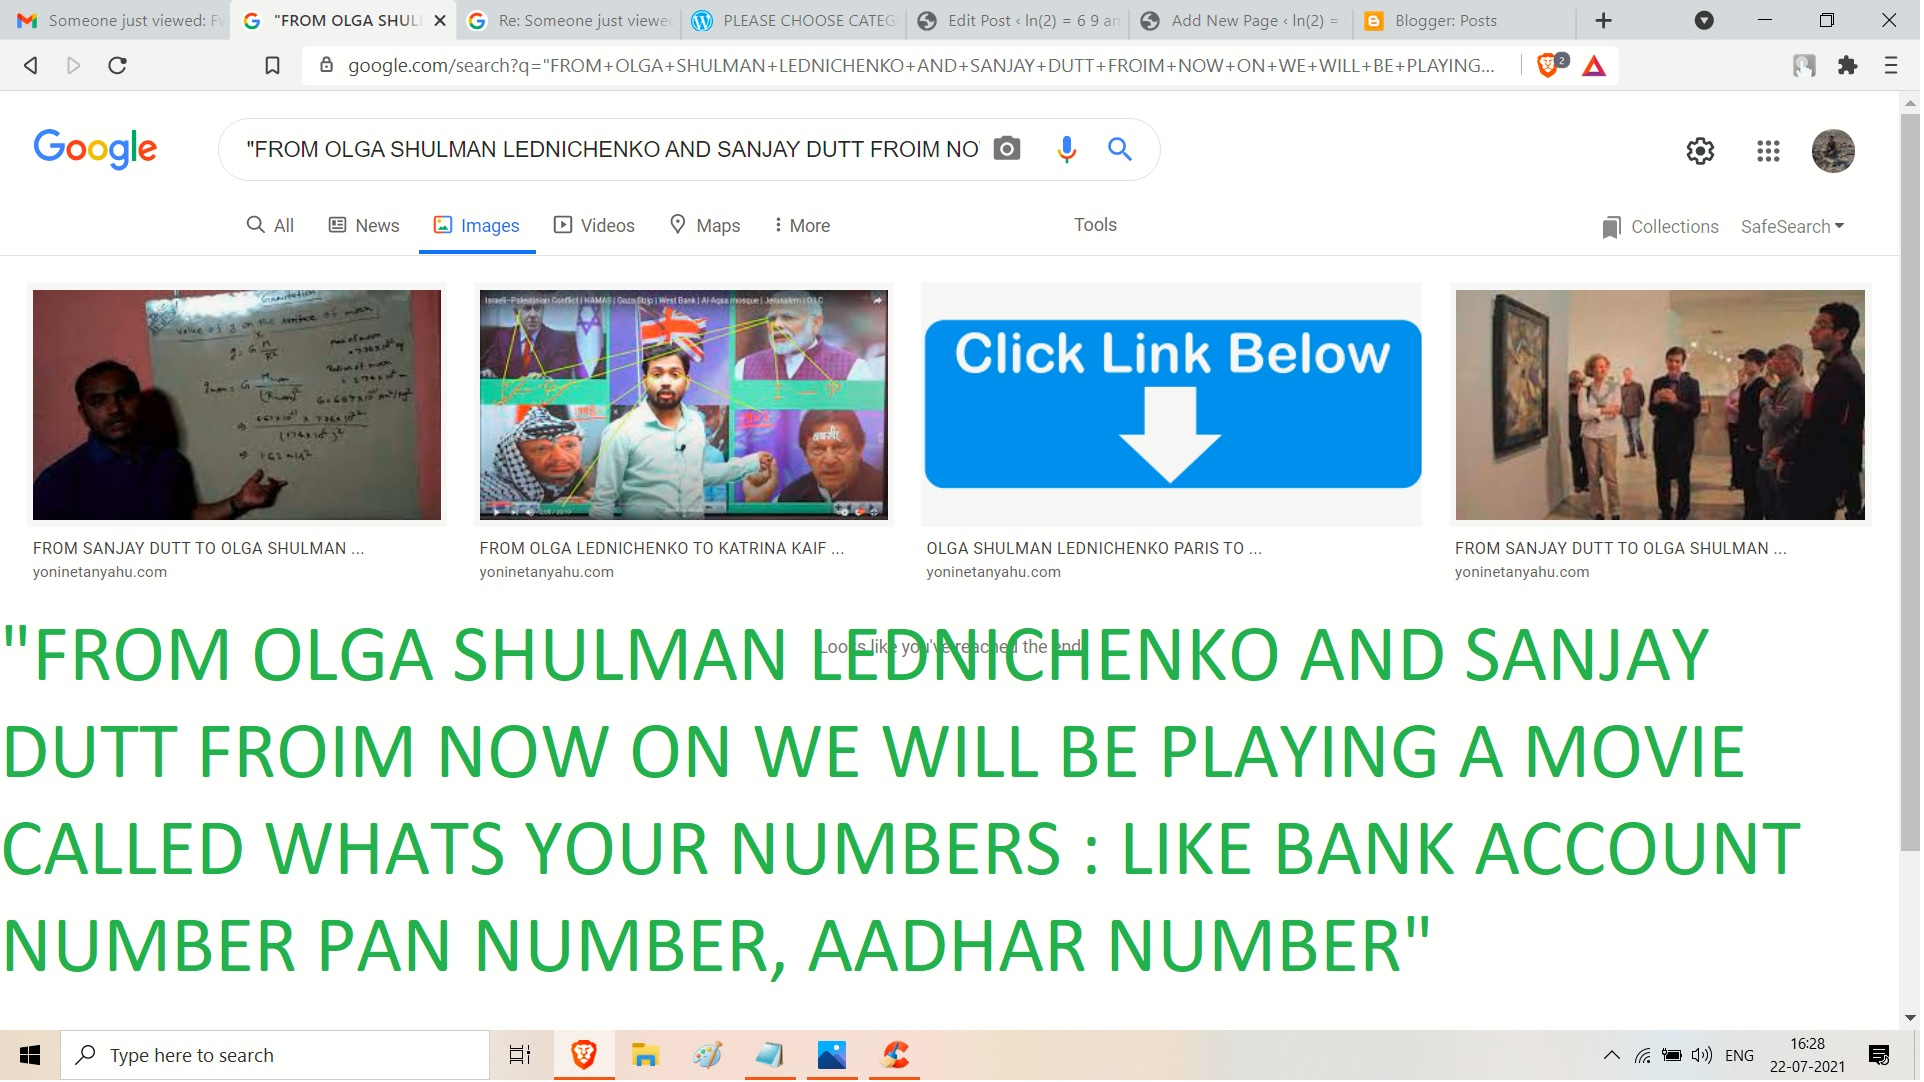 FROIM NOW ON WE WILL BE PLAYING A MOVIE CALLED WHATS YOUR NUMBERS -LIKE BANK ACCOUNT NUMBER PAN NUMBER, AADHAR NUMBER REGRDS AJAY MIHSRA